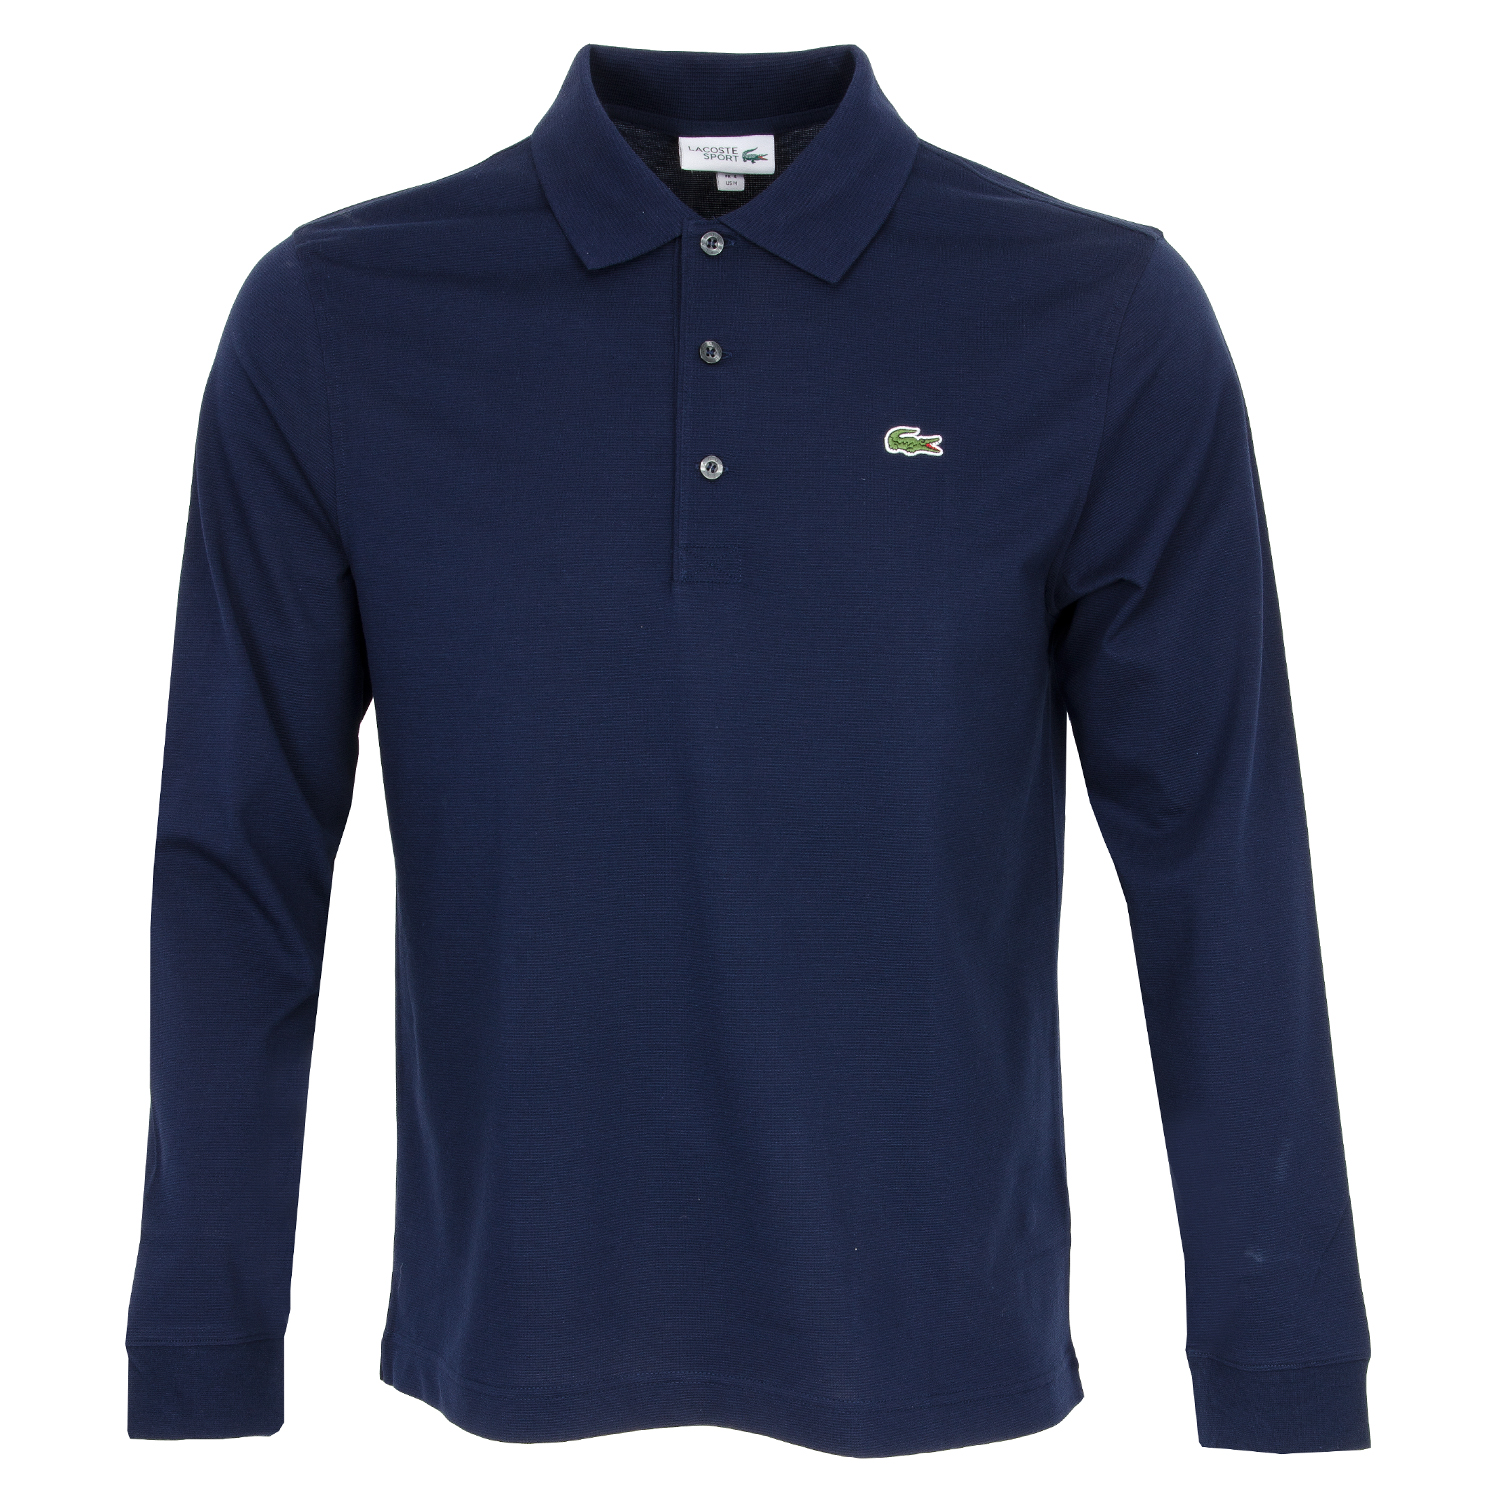 c5cffaa0 Lacoste Sport Long Sleeved Polo Shirt Navy | Scottsdale Golf